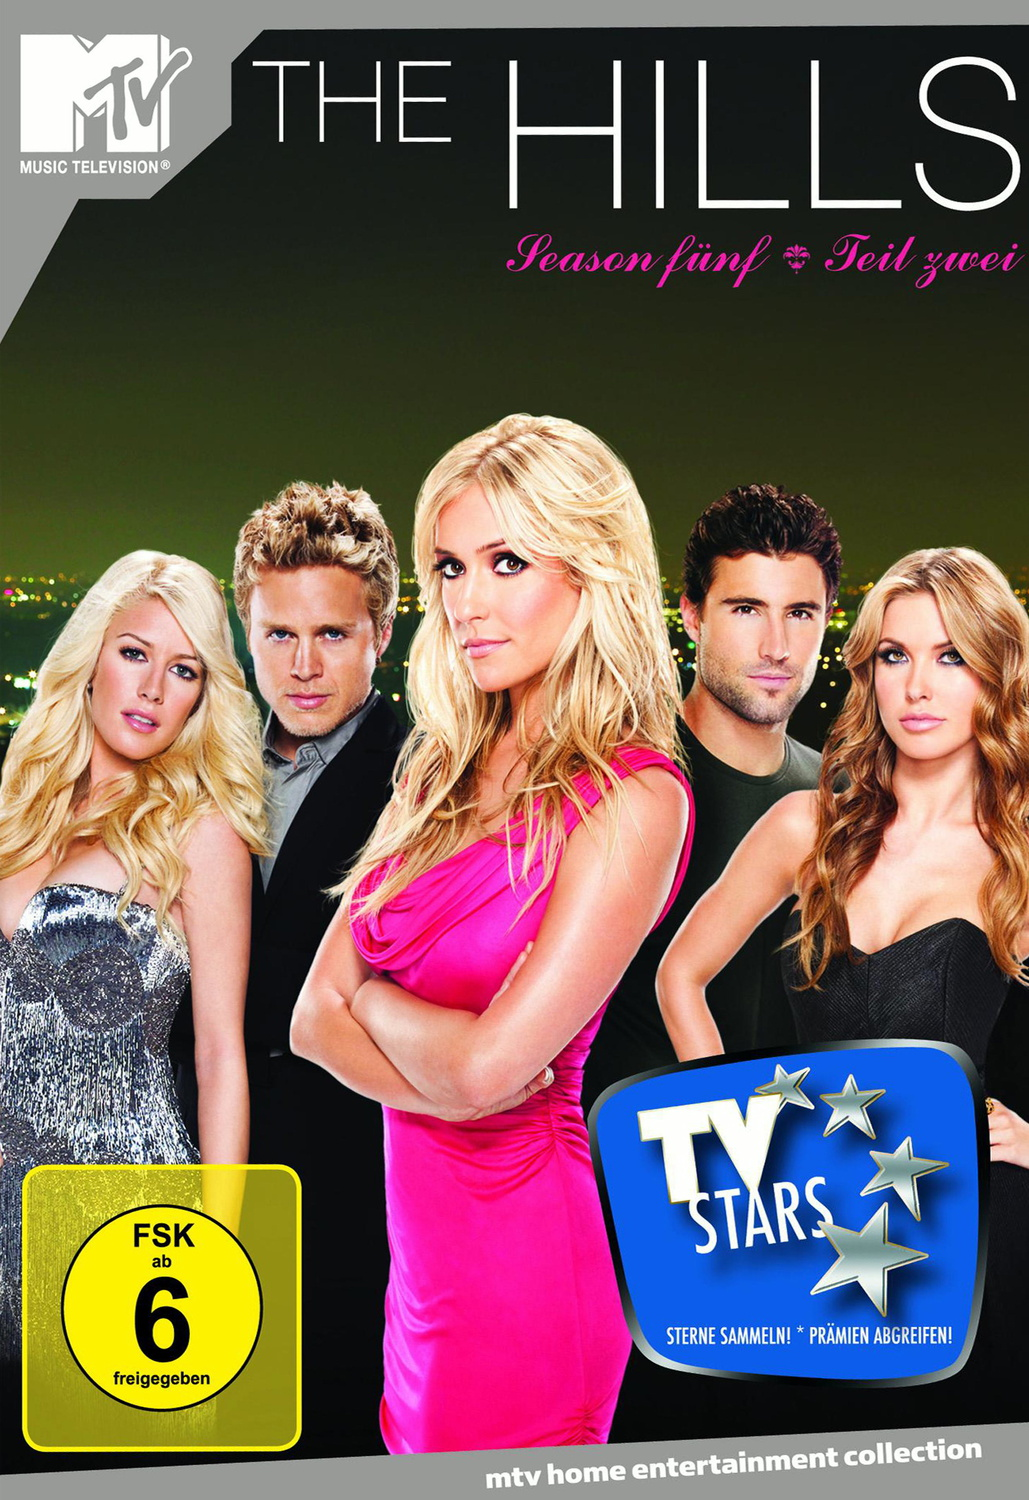 MTV The Hills - Season 5.2